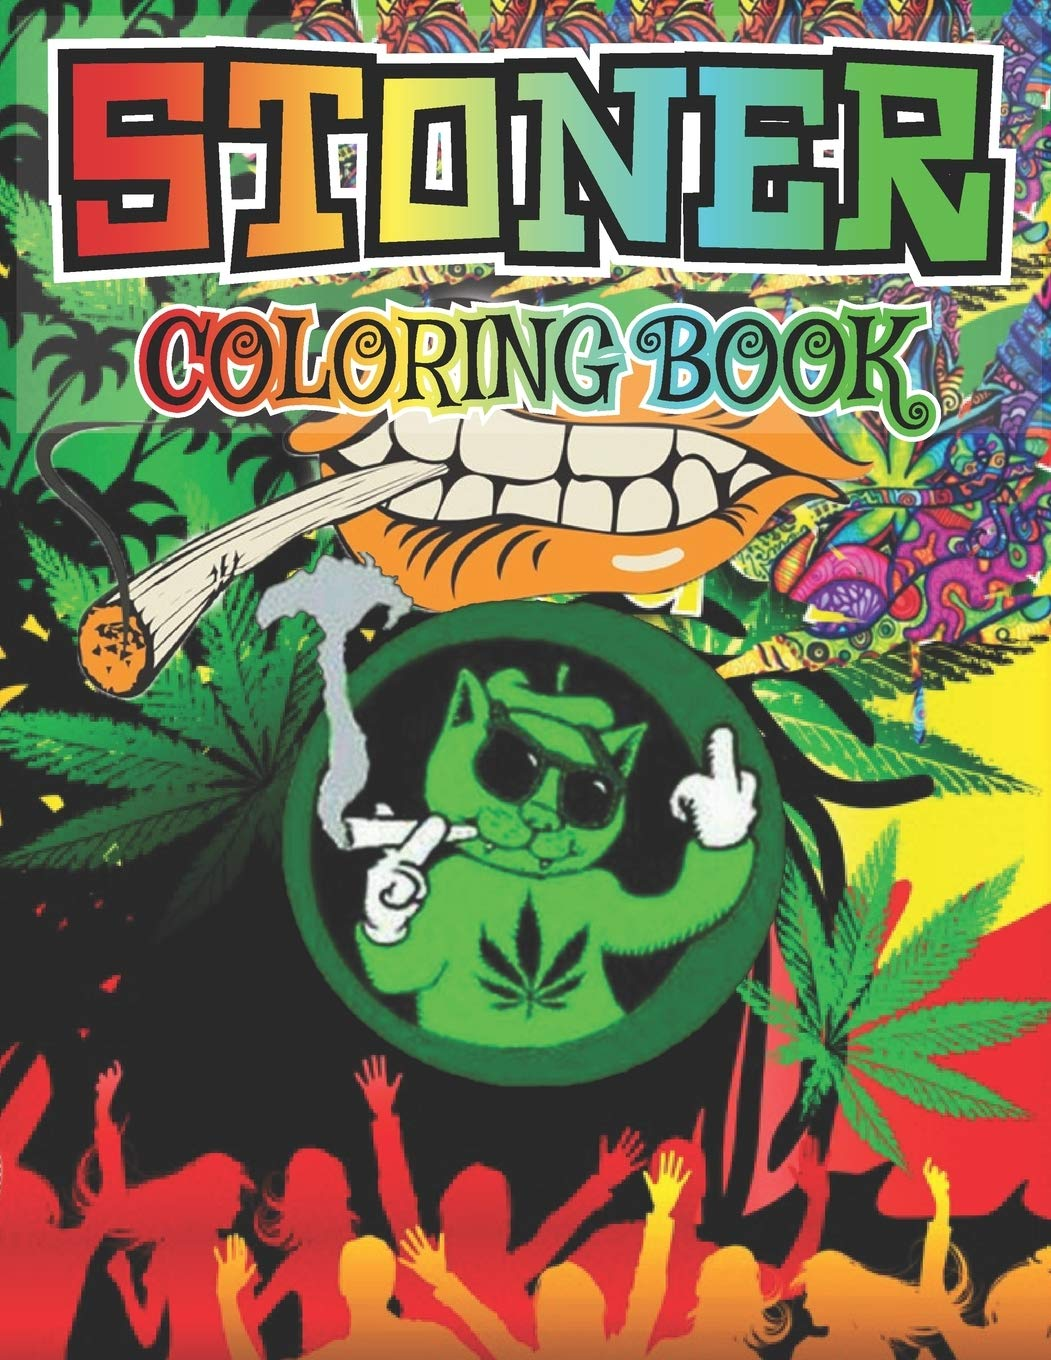 - Stoner Coloring Book: The Stoner's Psychedelic Coloring Book